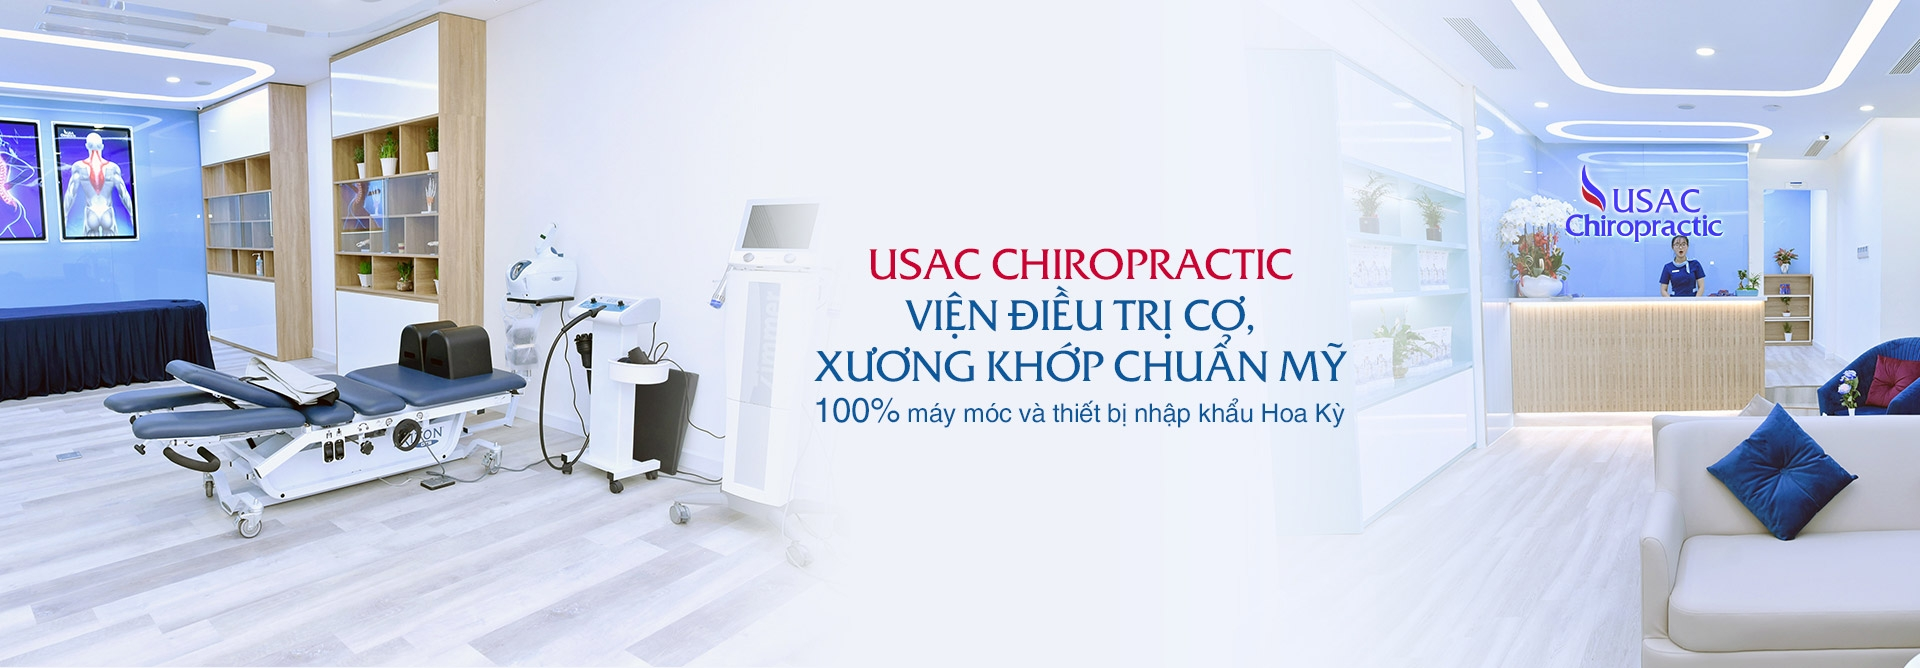 USAC (@usachiropractic) Cover Image